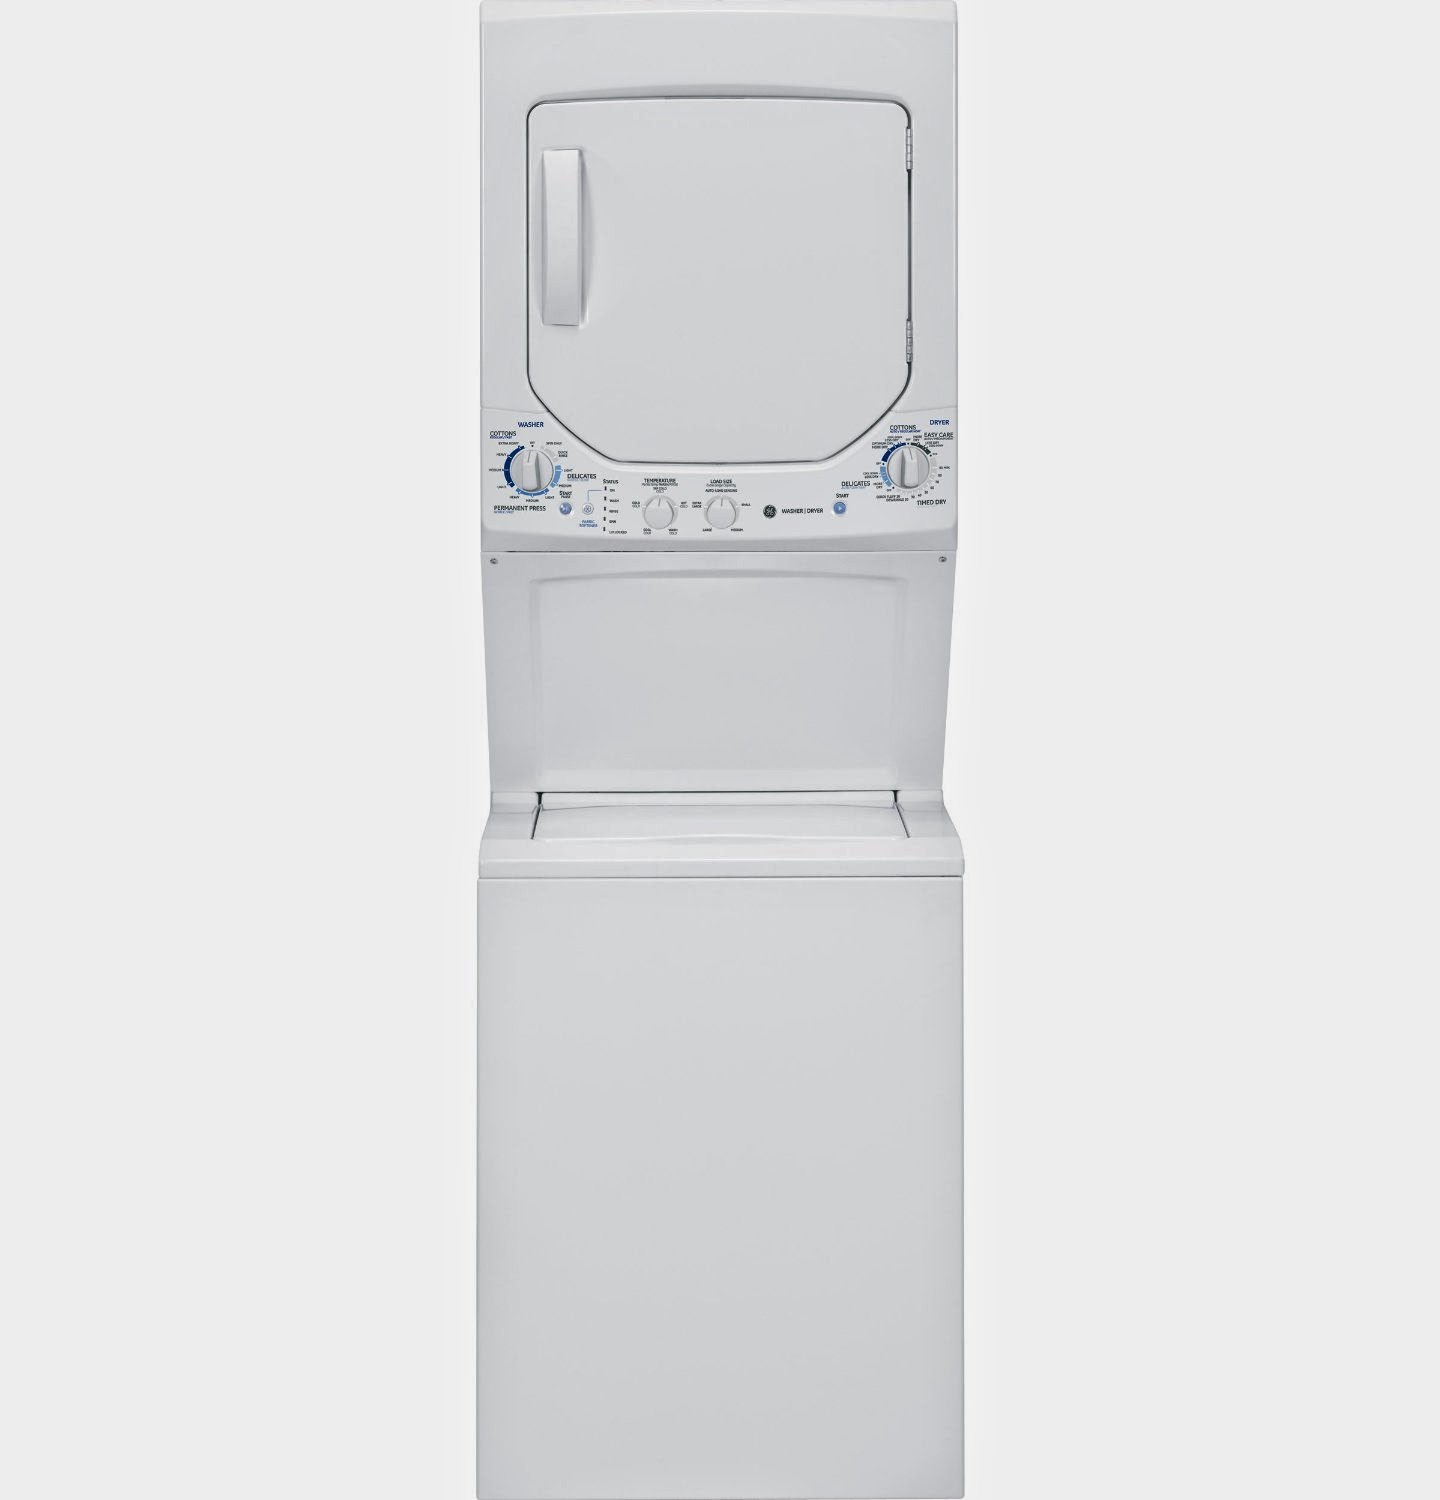 Images of Ge Washer And Dryer Combo